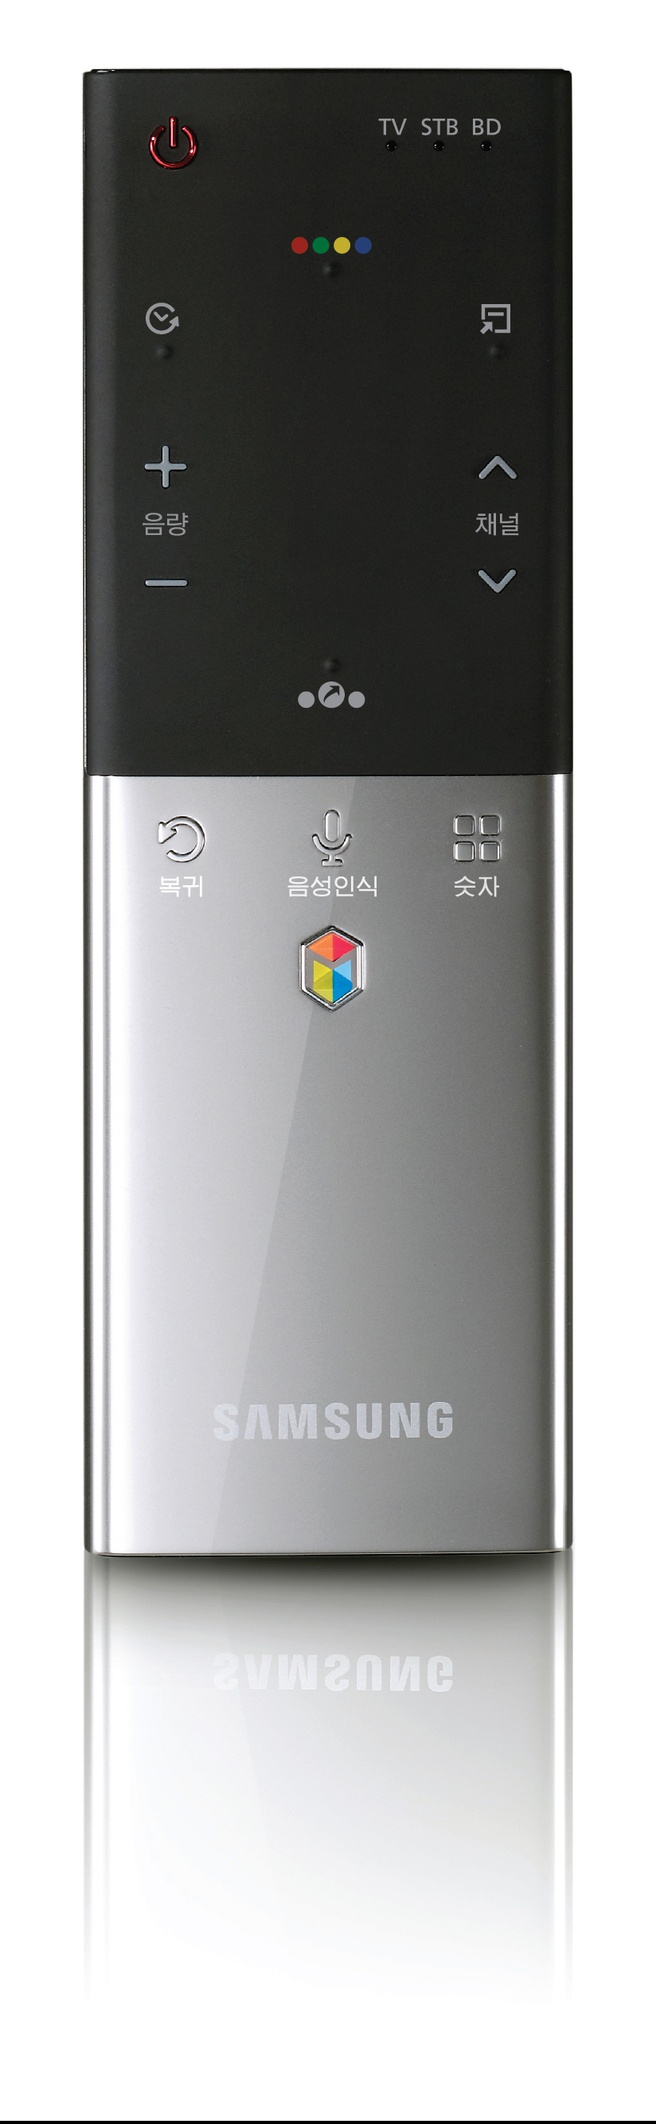 Samsung Smart Touch Remote Control